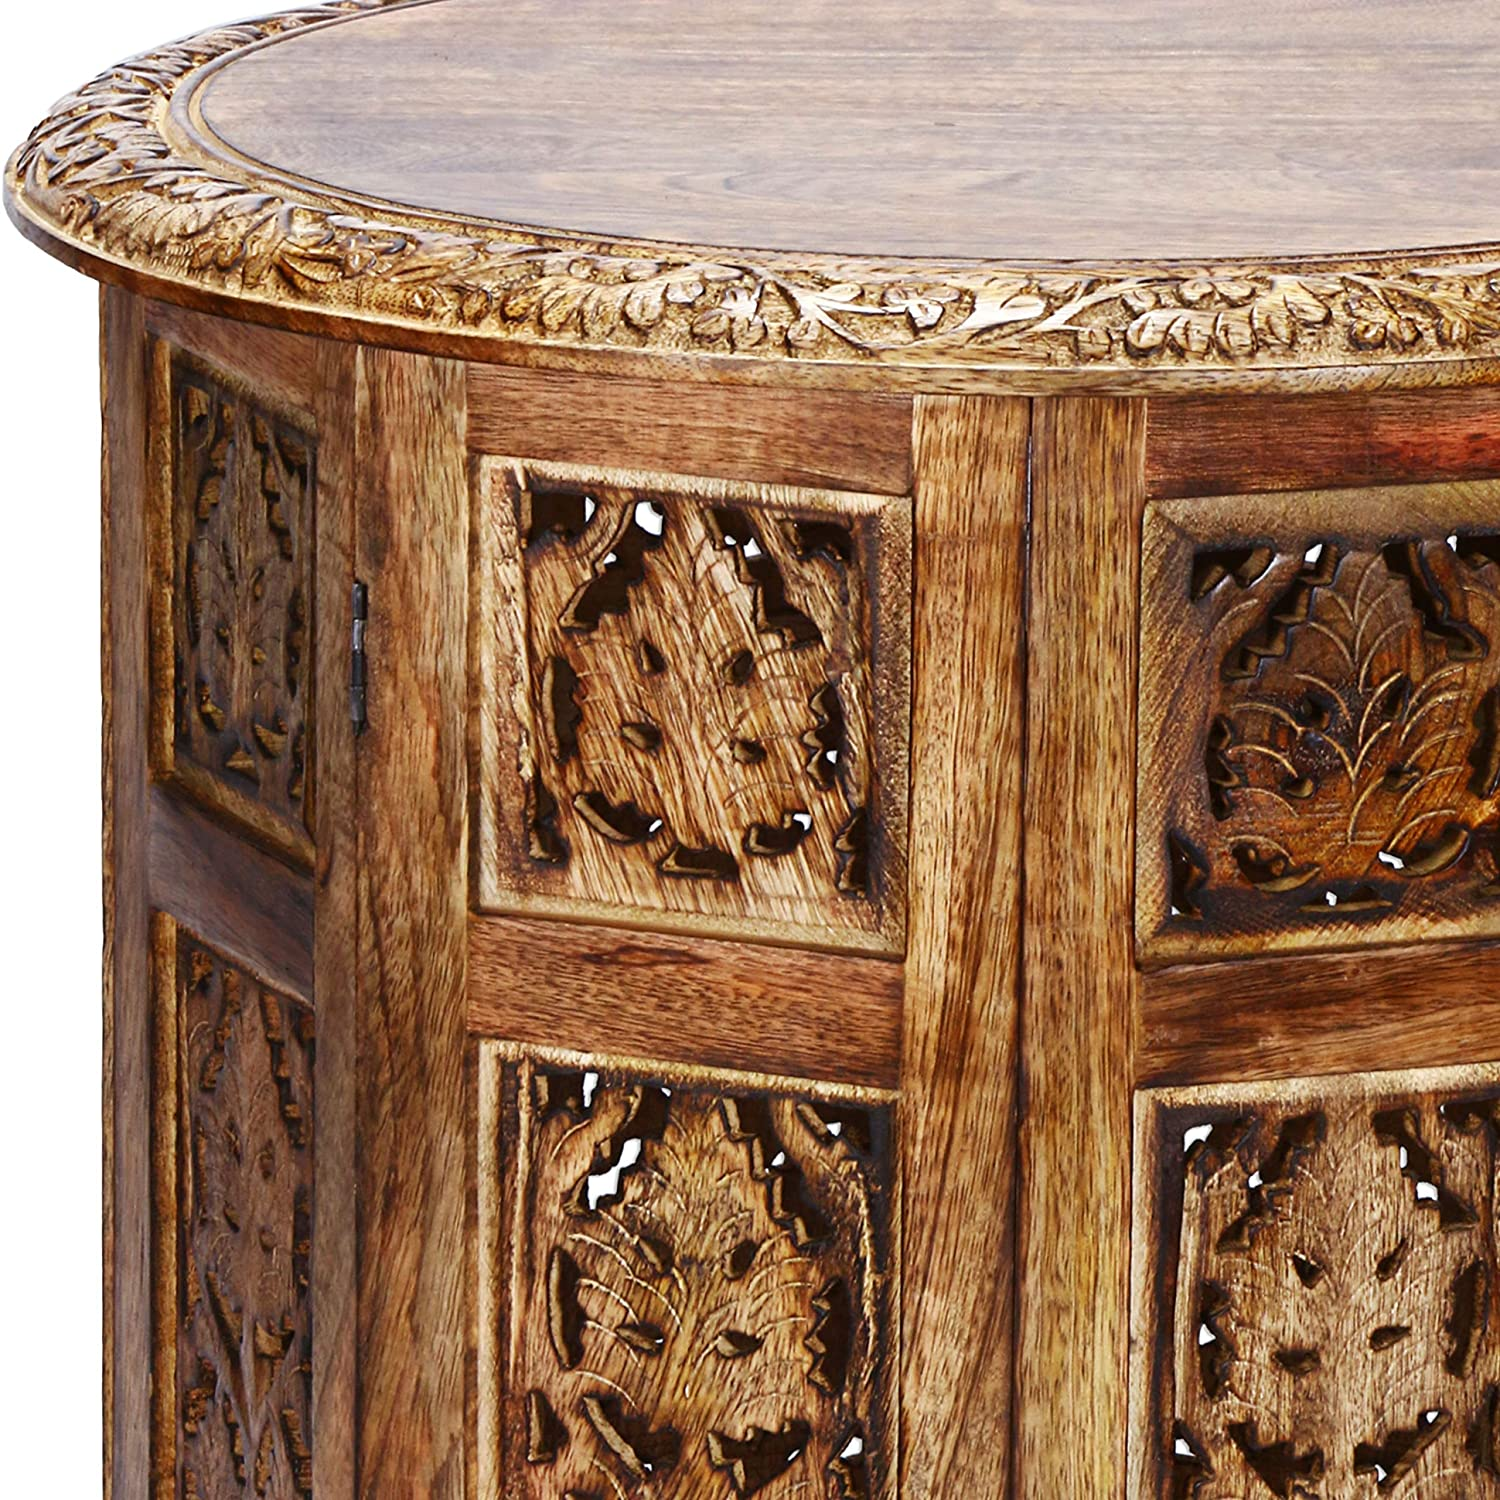 sofa bedside tables as oriental Home or Living room Decoration Moroccan Style Folding Small Solid Wood Side Table Ashkar Brown /ø 45cm Round Indian Design flower stool as carved furniture.